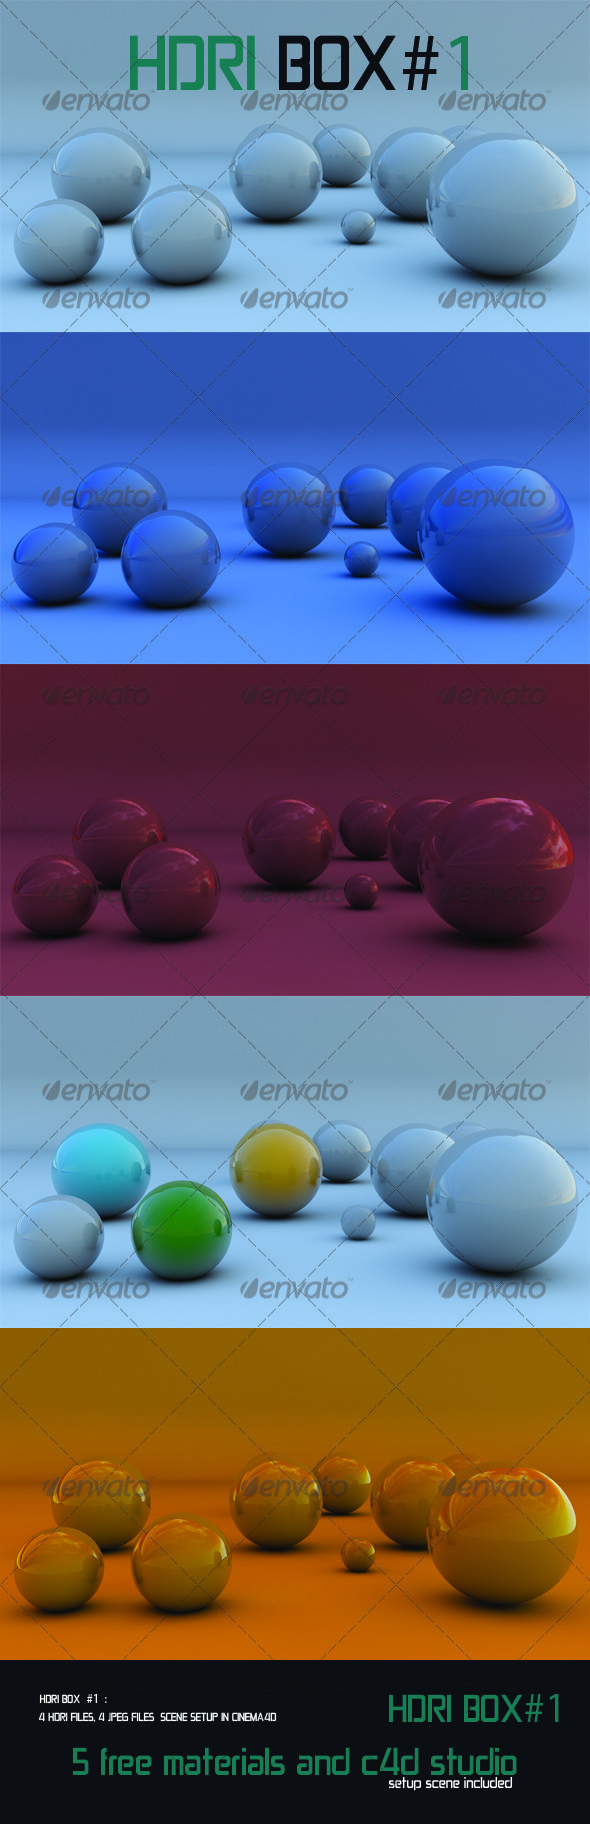 HDRI Box # 1 - 4 HDRIS   - 3DOcean Item for Sale